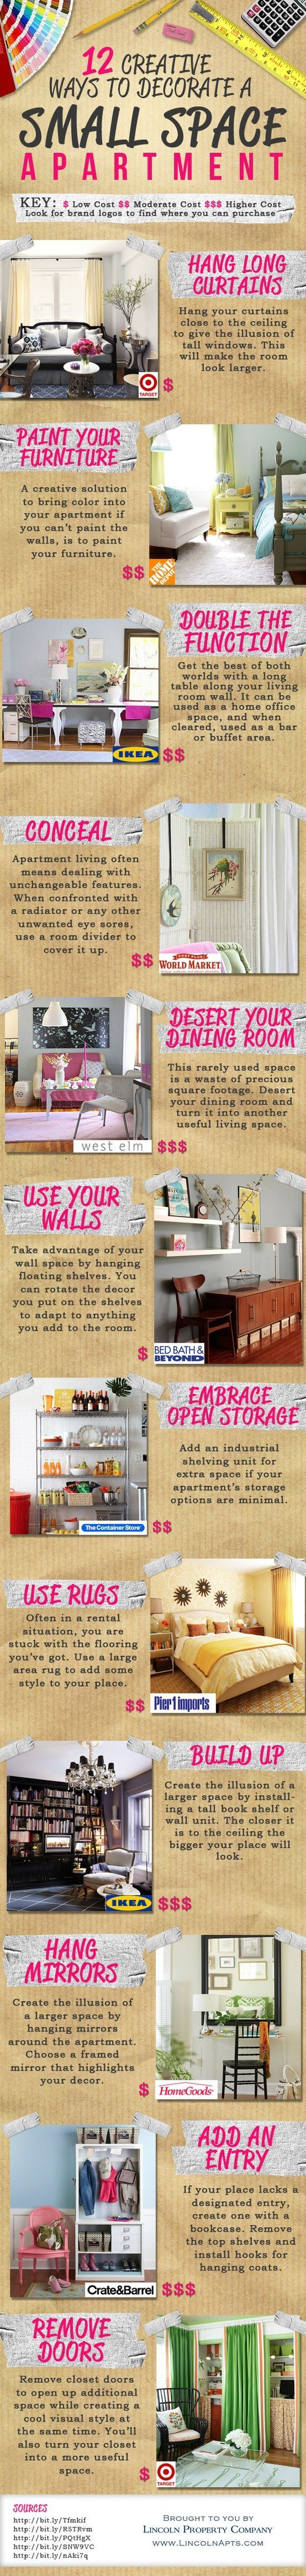 Small spaces don't need to lack style.  #HomeDecor #Apartments